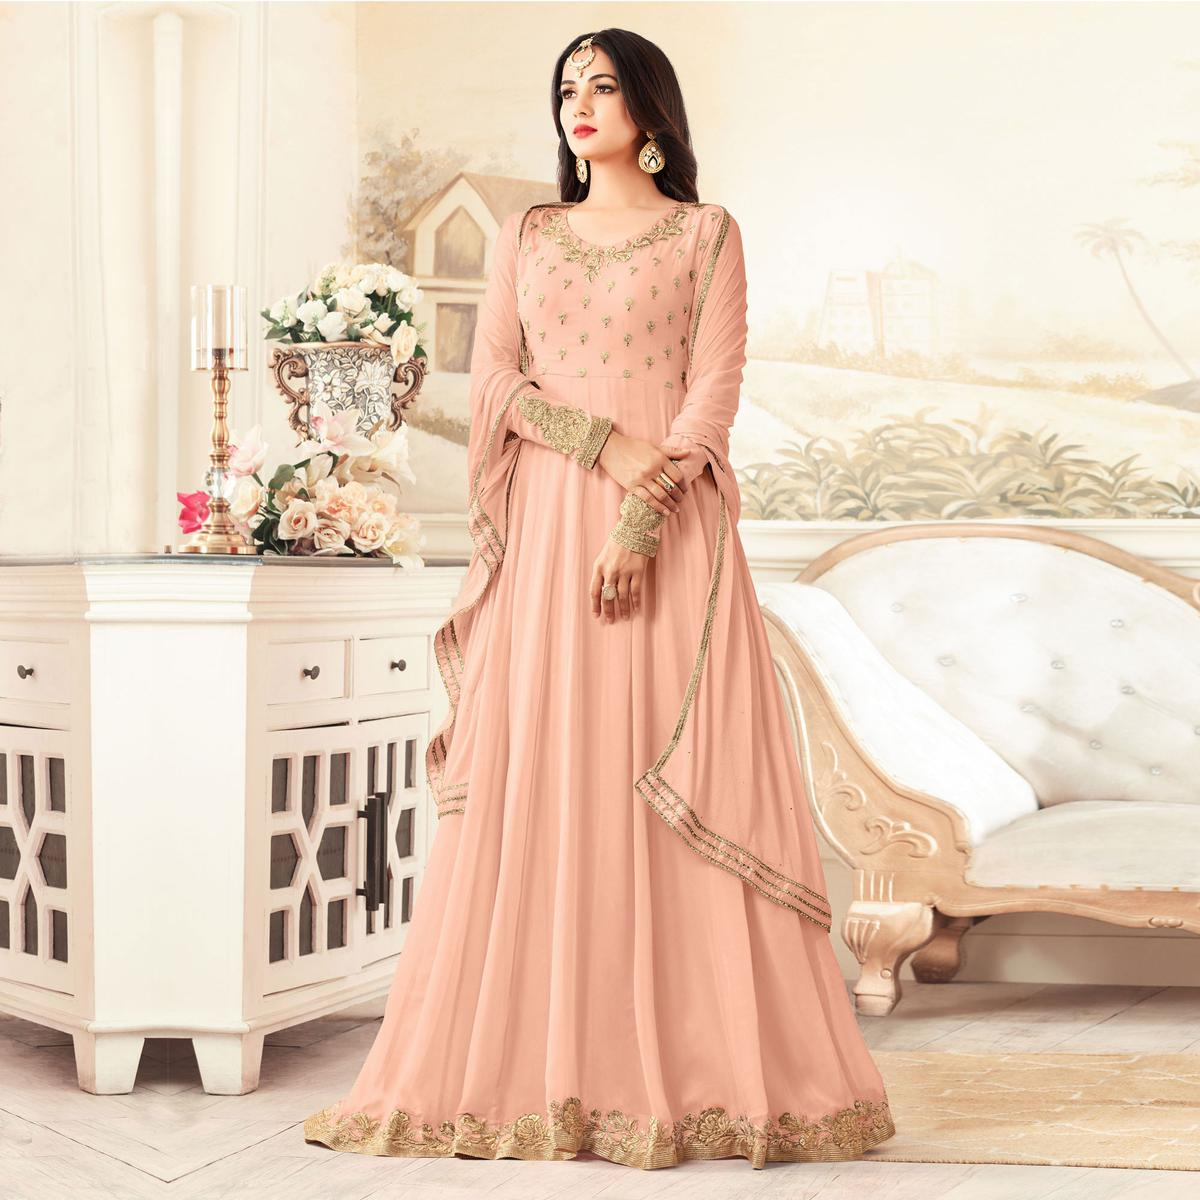 Peach Floral Embroidered Floor Length Georgette Anarkali Suit